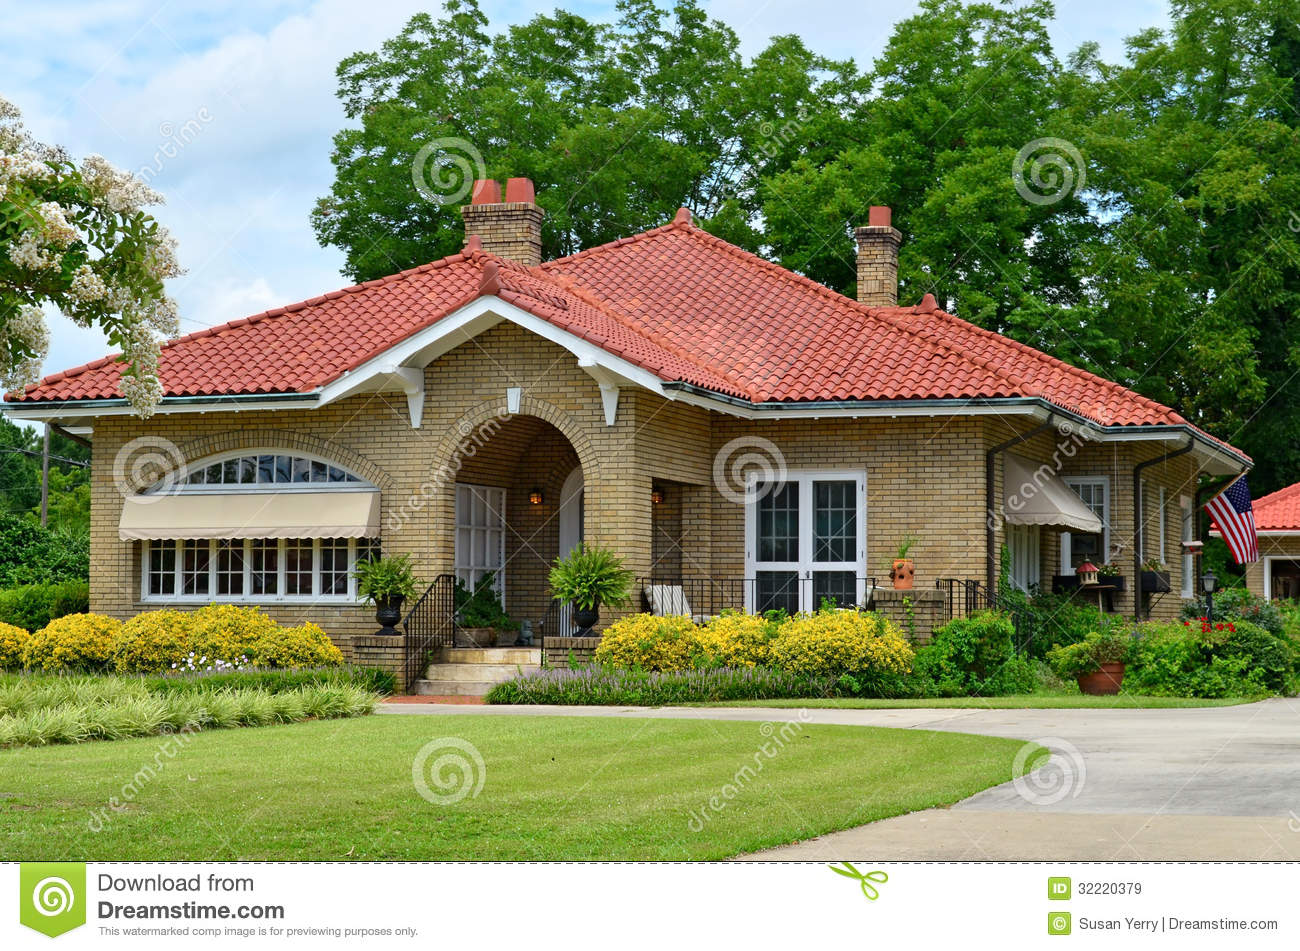 Unique American Home Country Cottage Royalty Free Stock